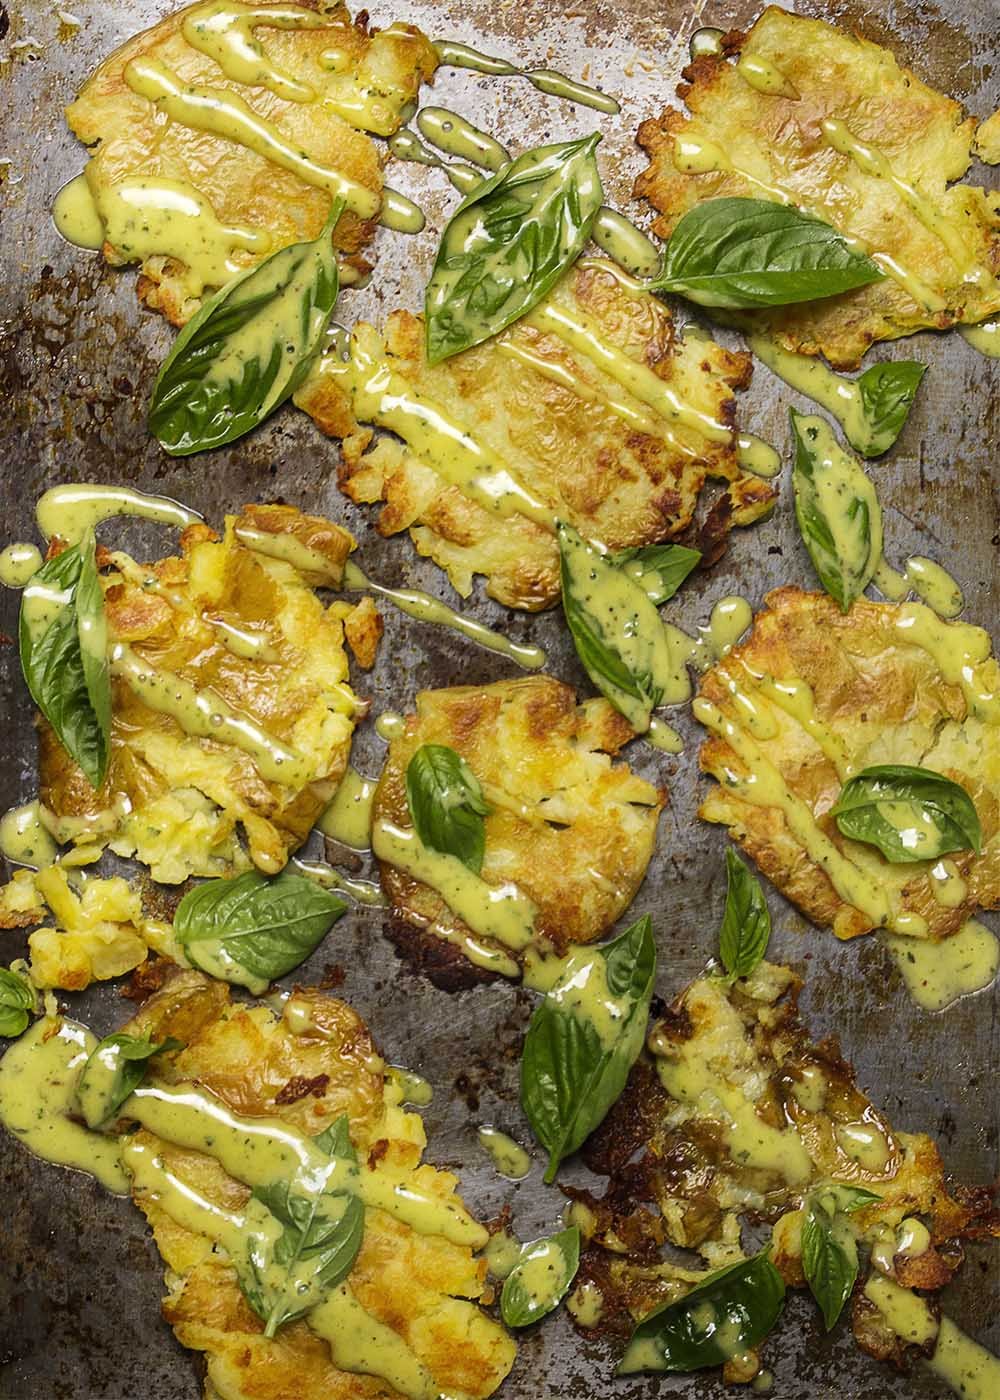 Crispy Roasted Smashed Potatoes - These crispy and easy roasted smashed potatoes make a great side dish. Cook the potatoes ahead and then smash them flat and crisp them in the oven. Serve them with a basil aioli to put them over the top.   justalittlebitofbacon.com